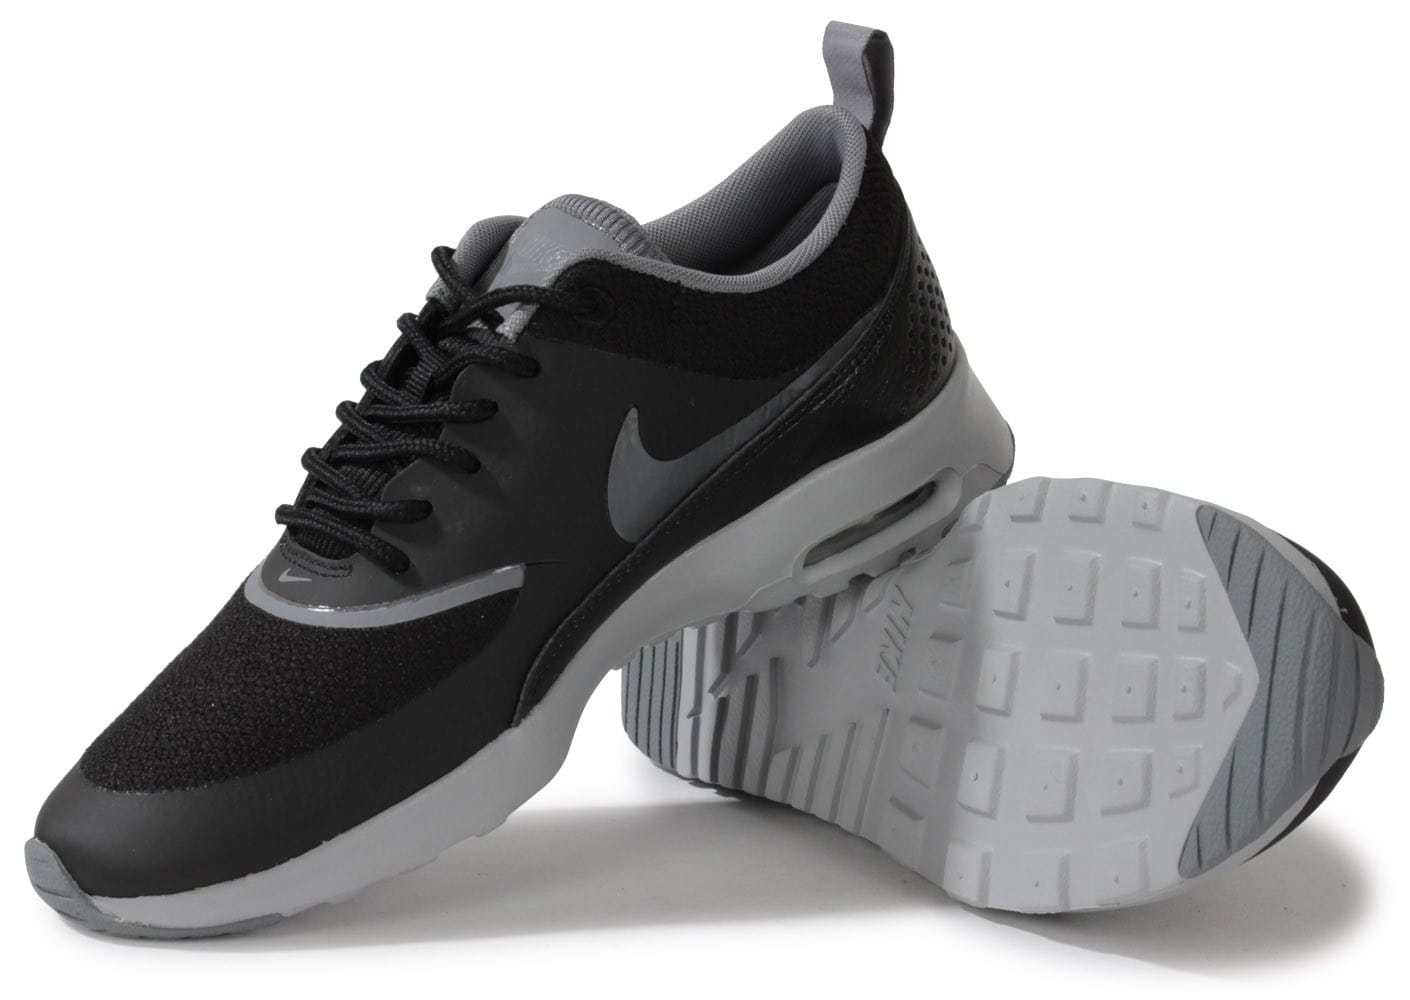 nike air max thea femme chausport. Black Bedroom Furniture Sets. Home Design Ideas